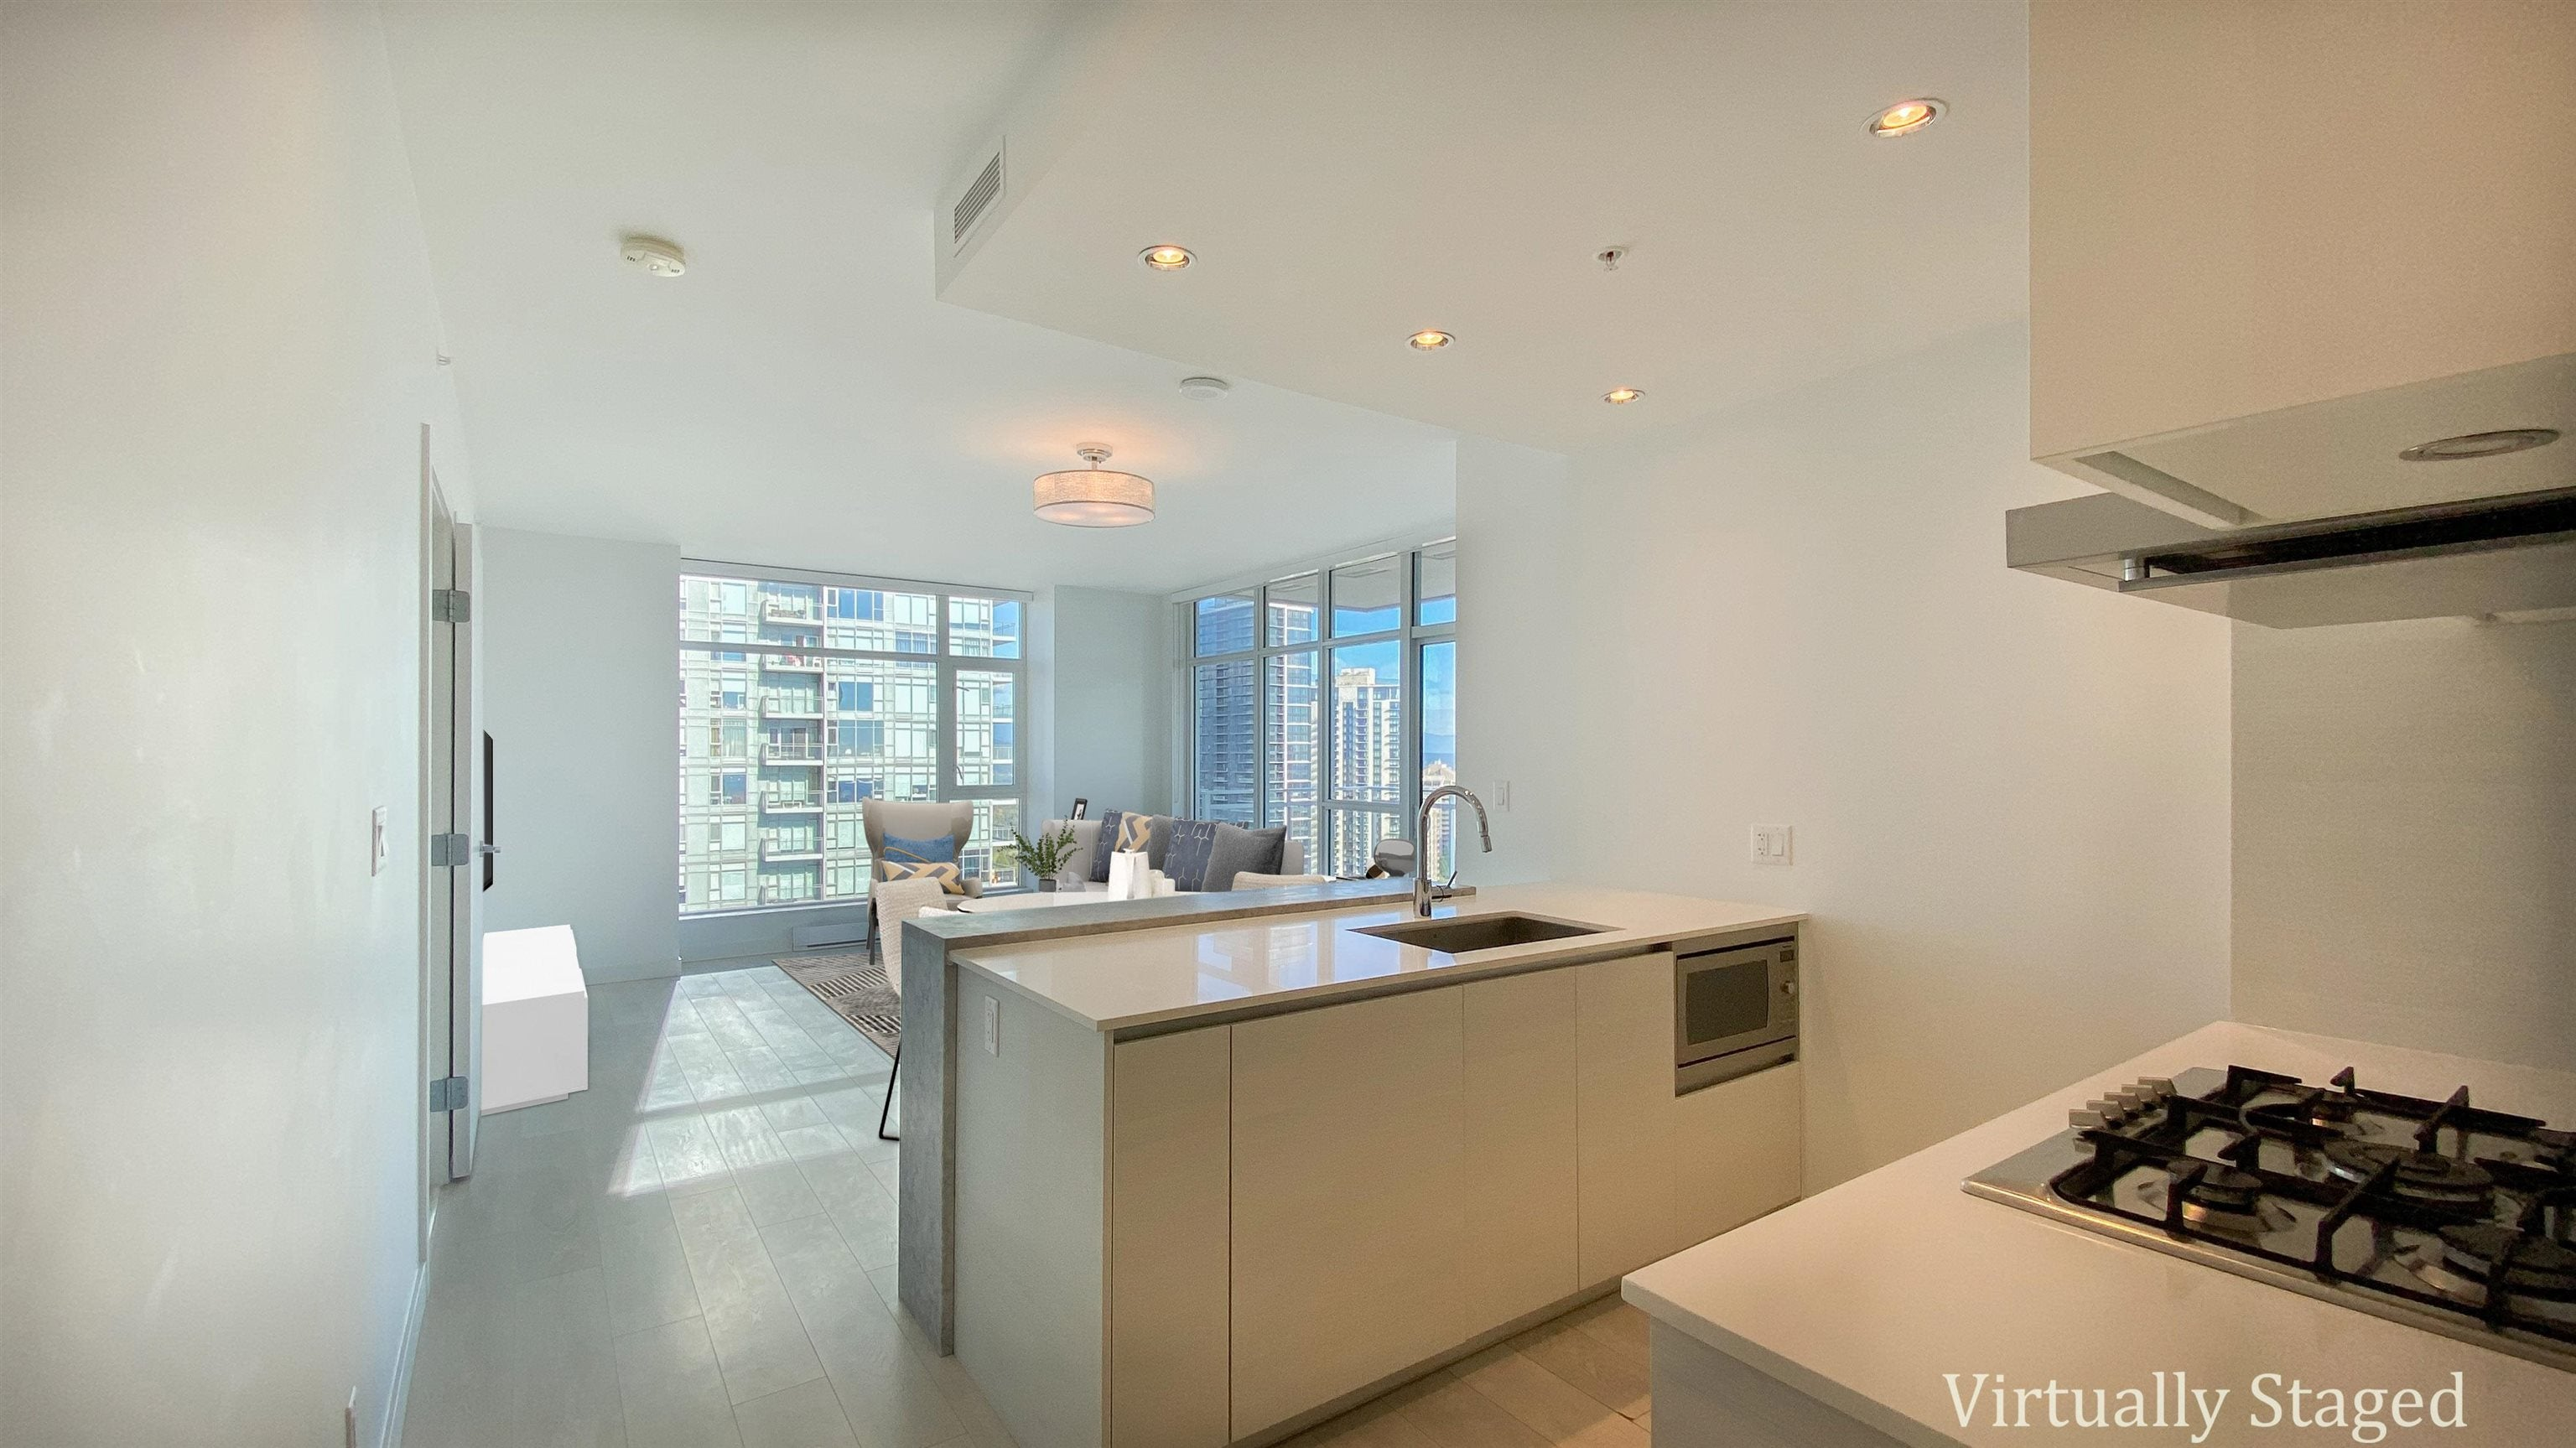 2510 4670 ASSEMBLY WAY - Metrotown Apartment/Condo for sale, 2 Bedrooms (R2625732) - #13